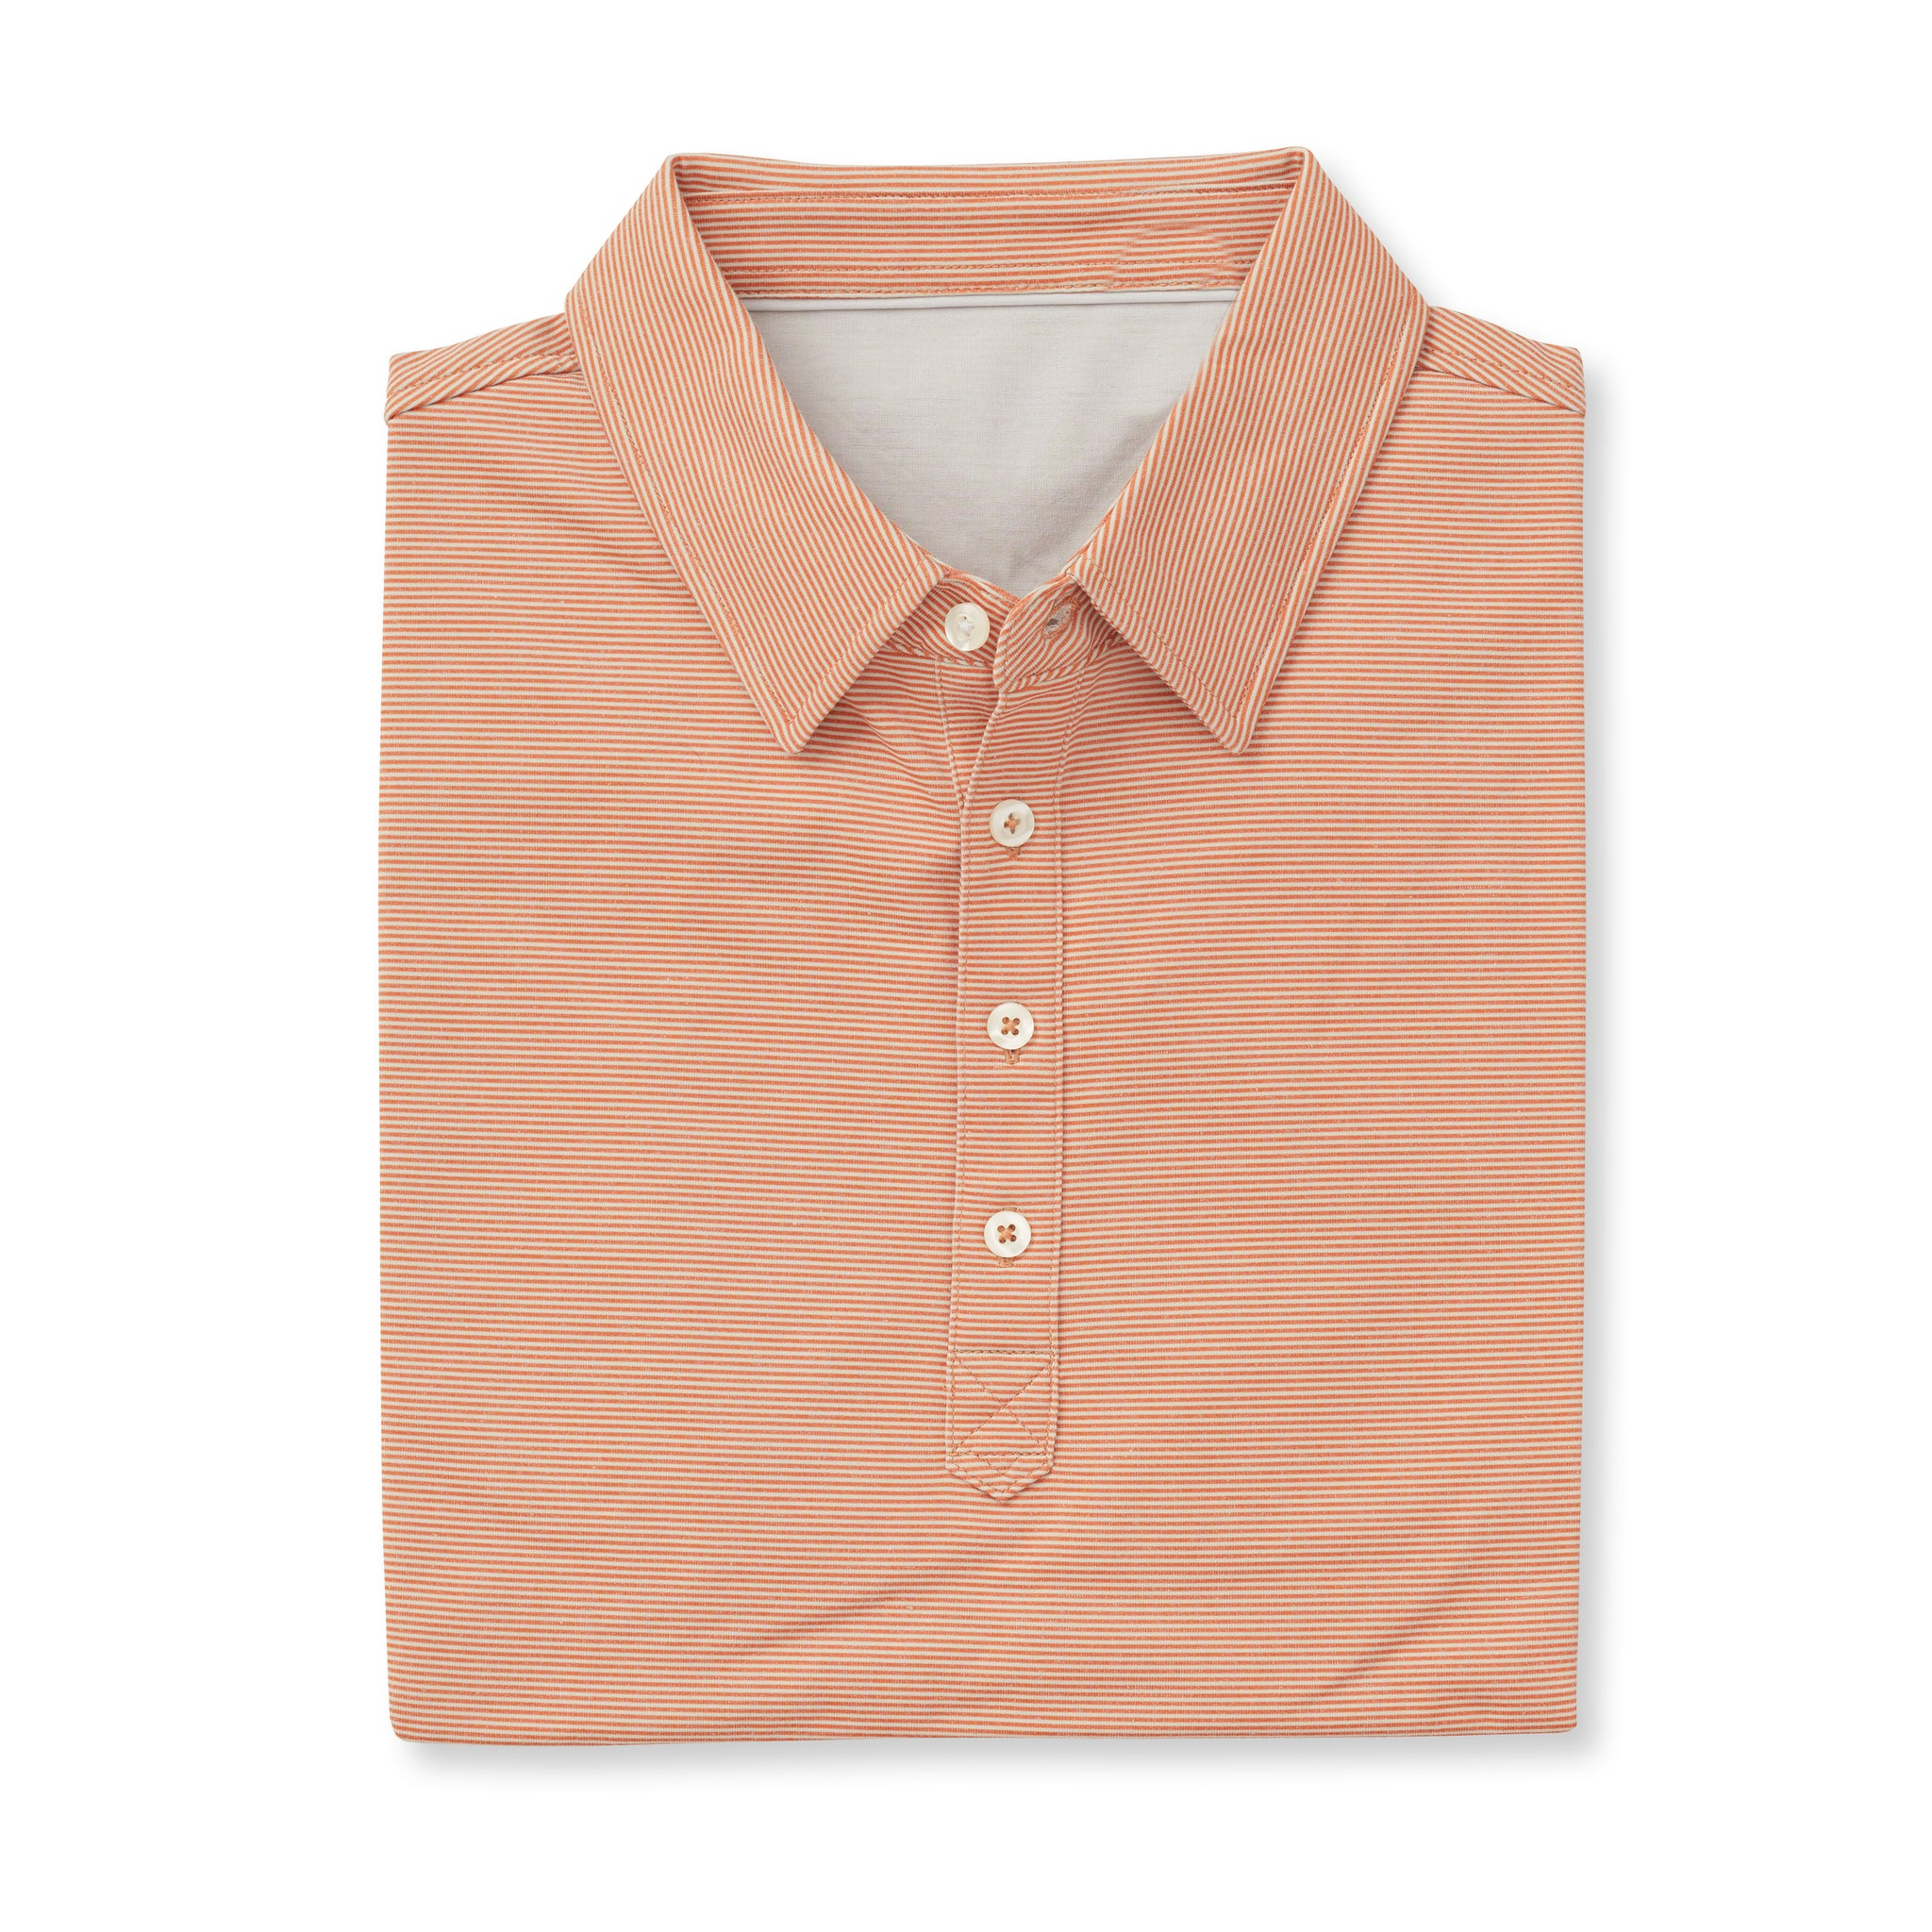 LUXTEC Champions Short Sleeve Stripe Polo - Burnt Orange/Cloud IS72410